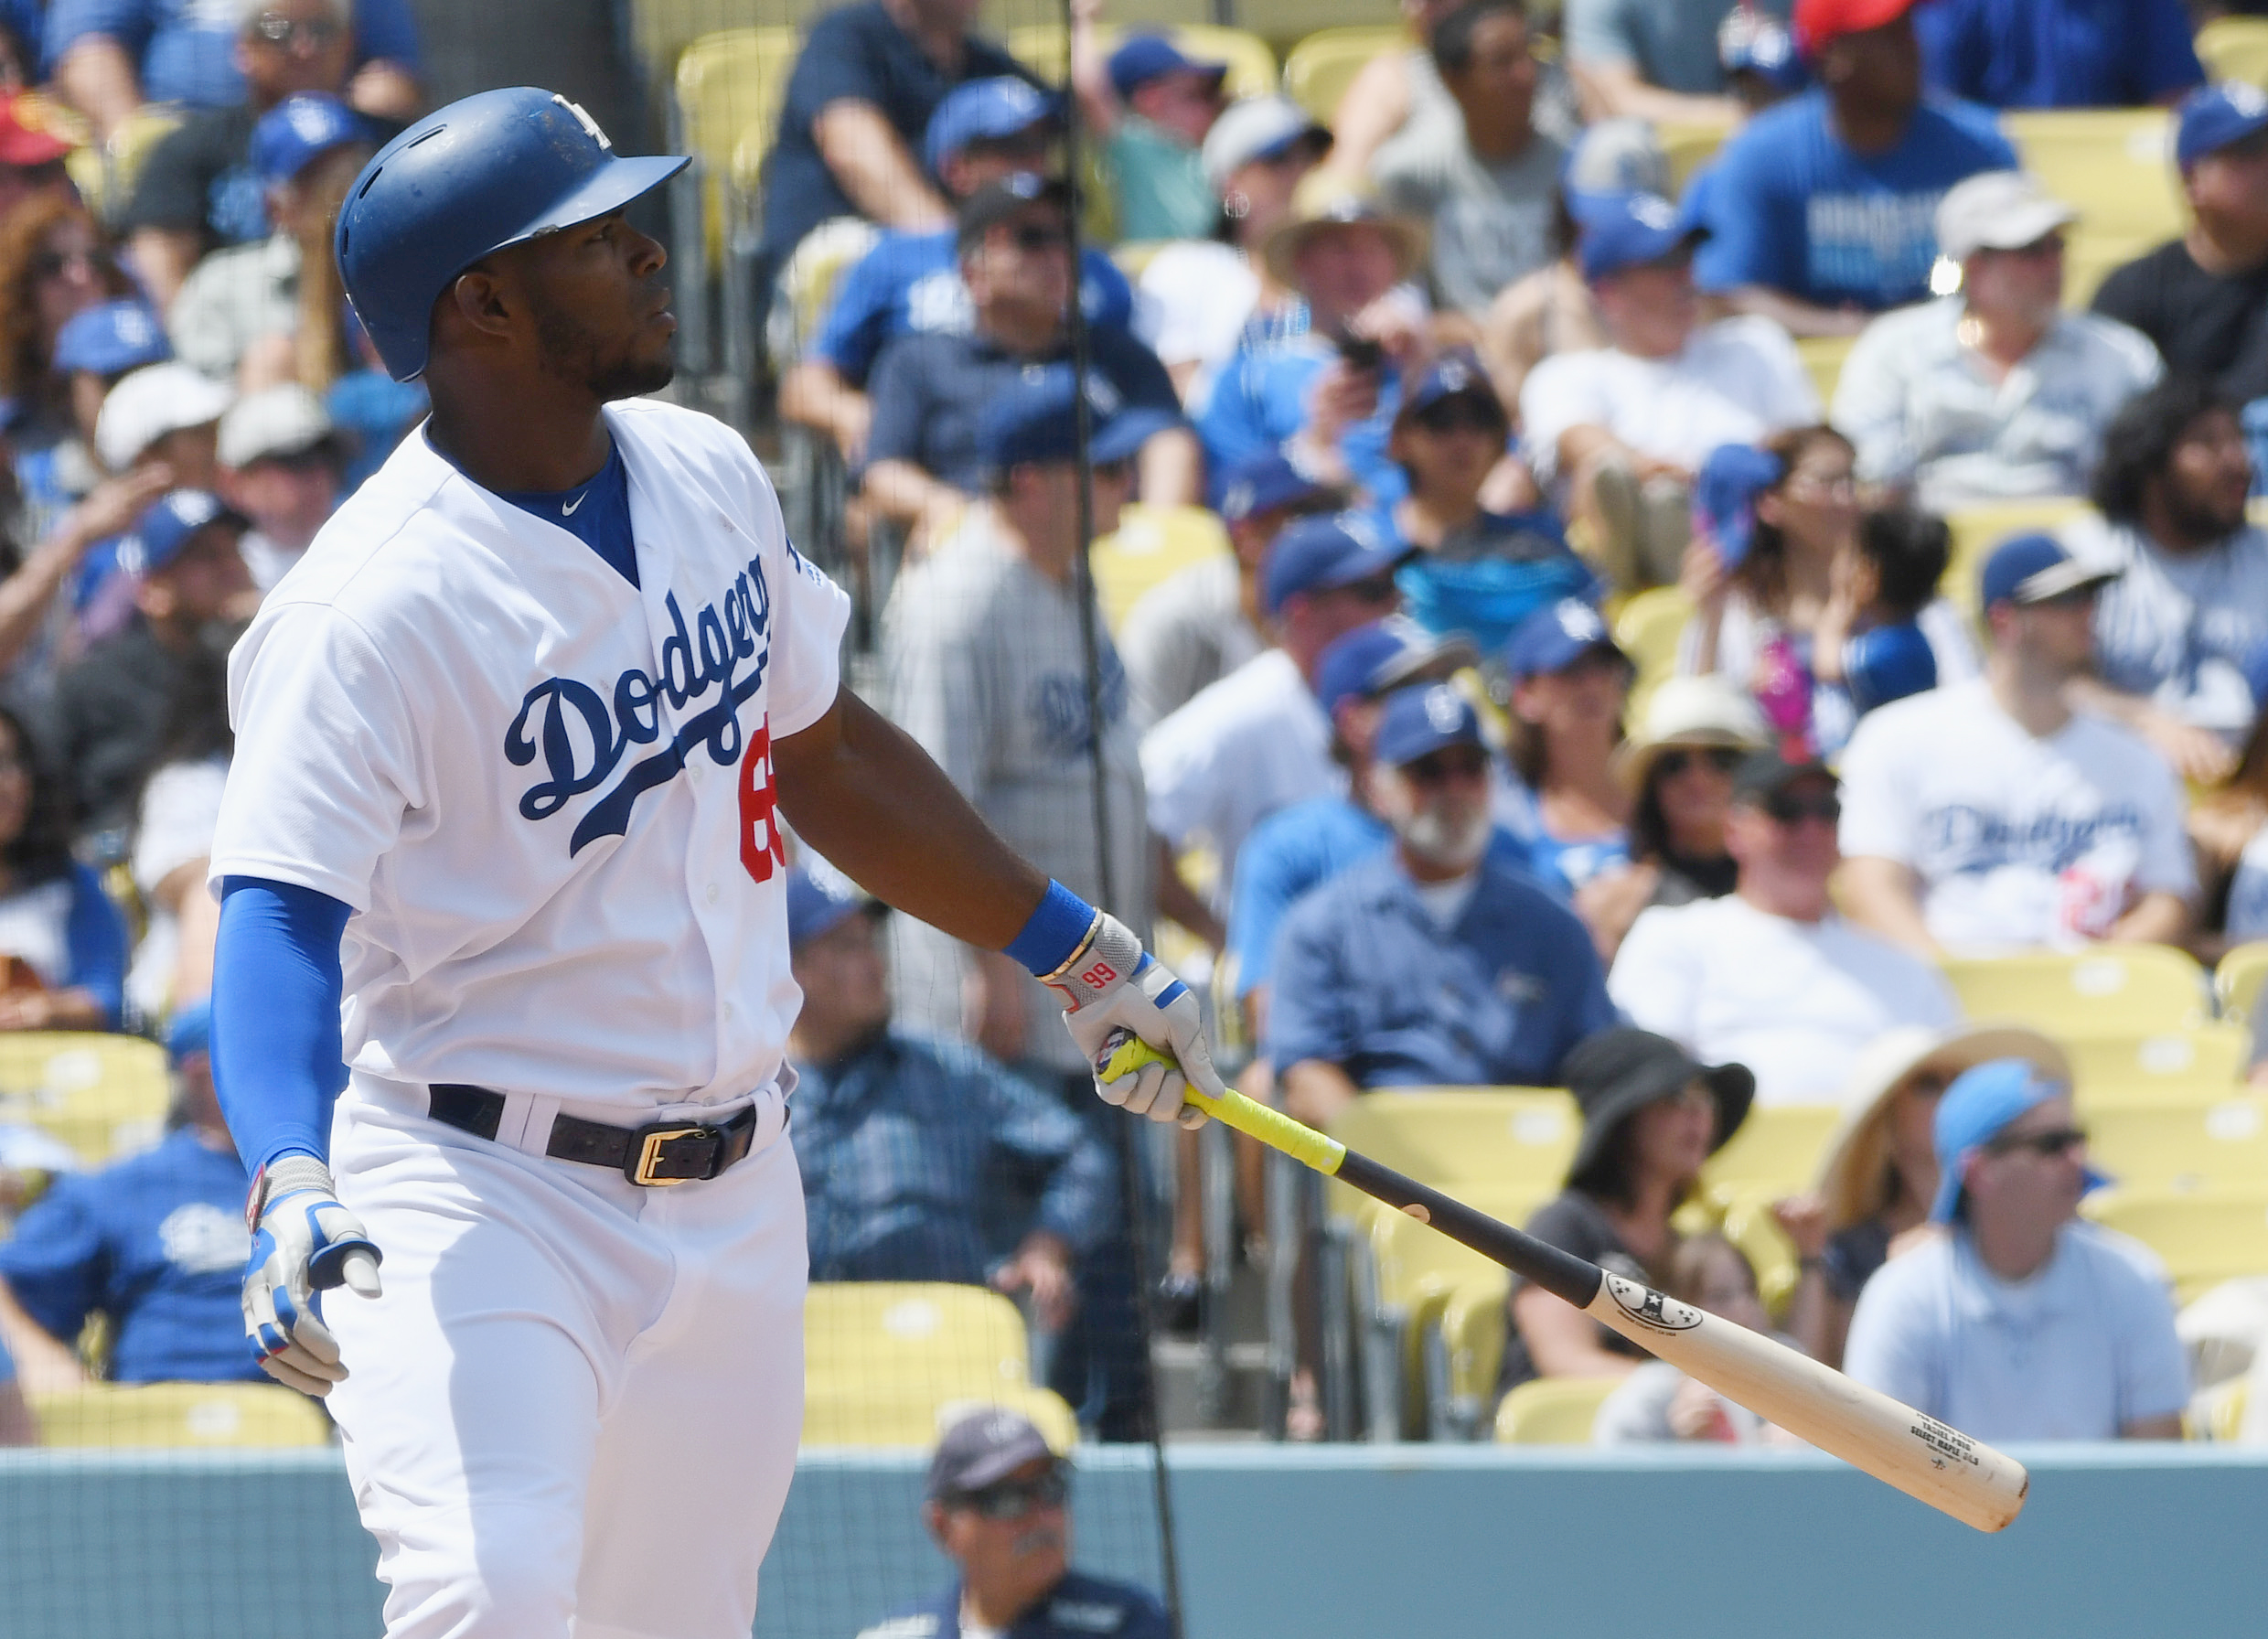 Apr 6, 2017; Los Angeles, CA, USA; Los Angeles Dodgers right fielder Yasiel Puig (66) hits his second two run home run of the game against the San Diego Padres in the fourth inning at Dodger Stadium. Mandatory Credit: Jayne Kamin-Oncea-USA TODAY Sports